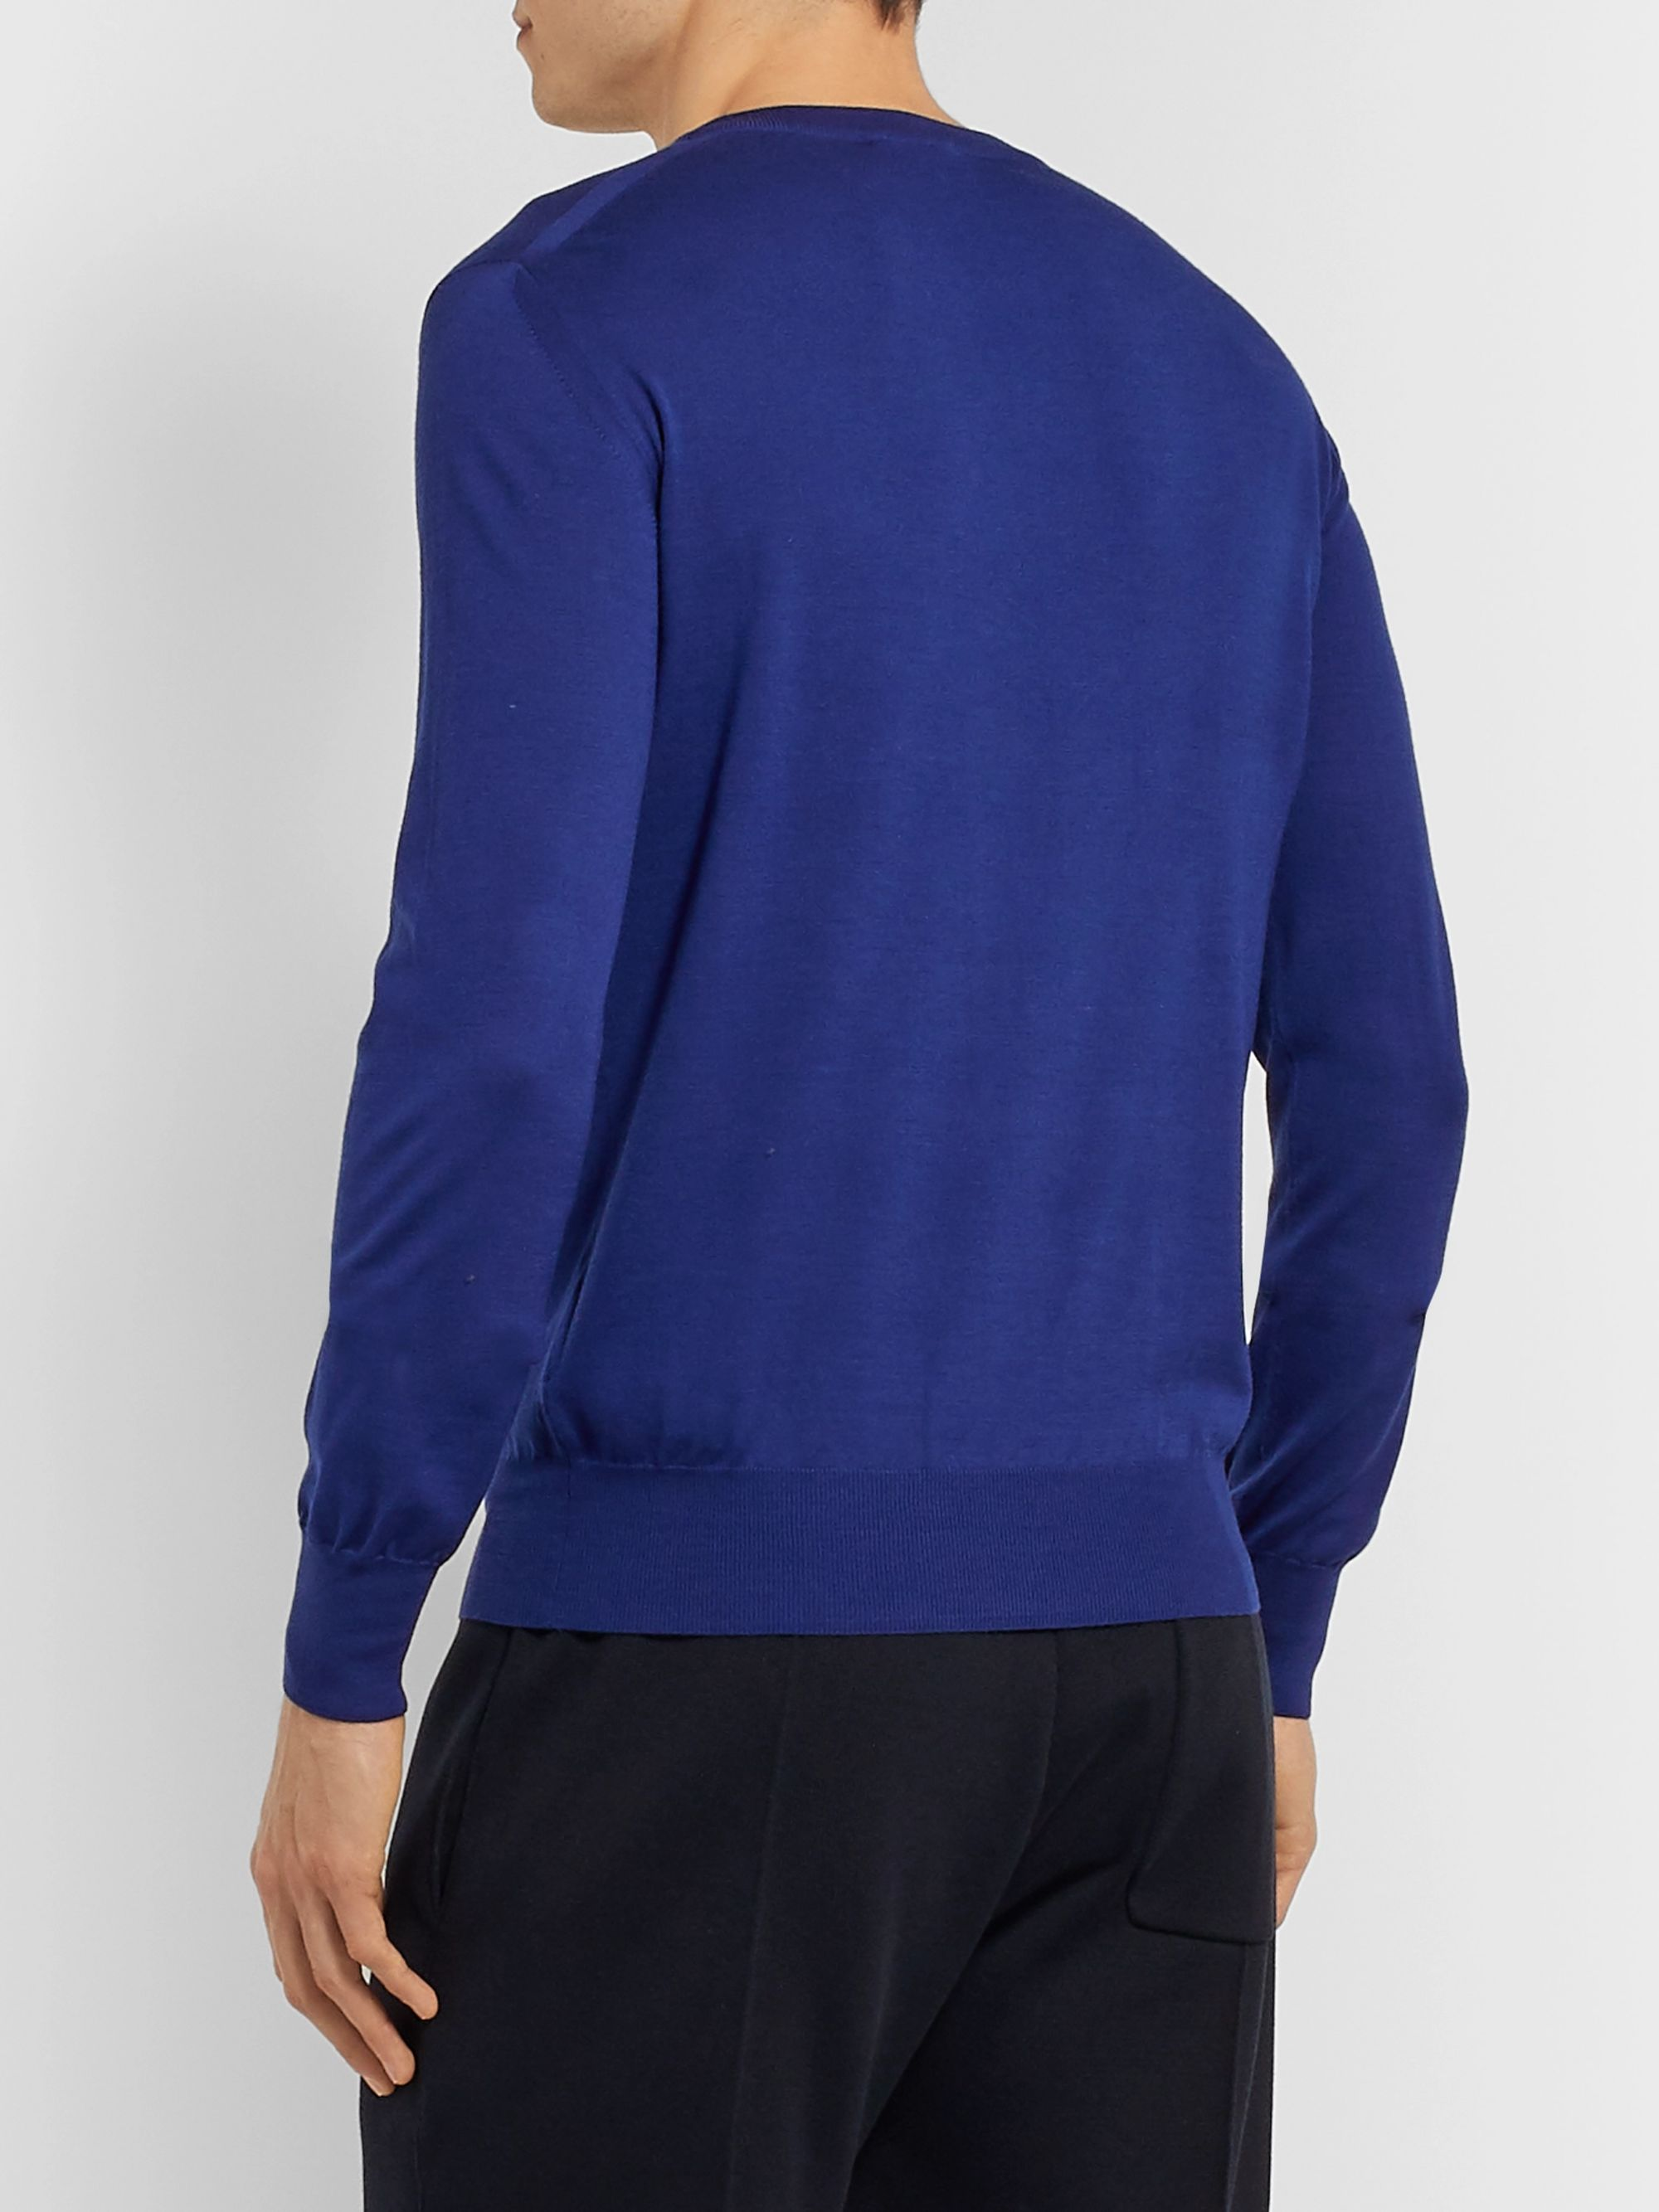 Brioni Virgin Wool Sweater